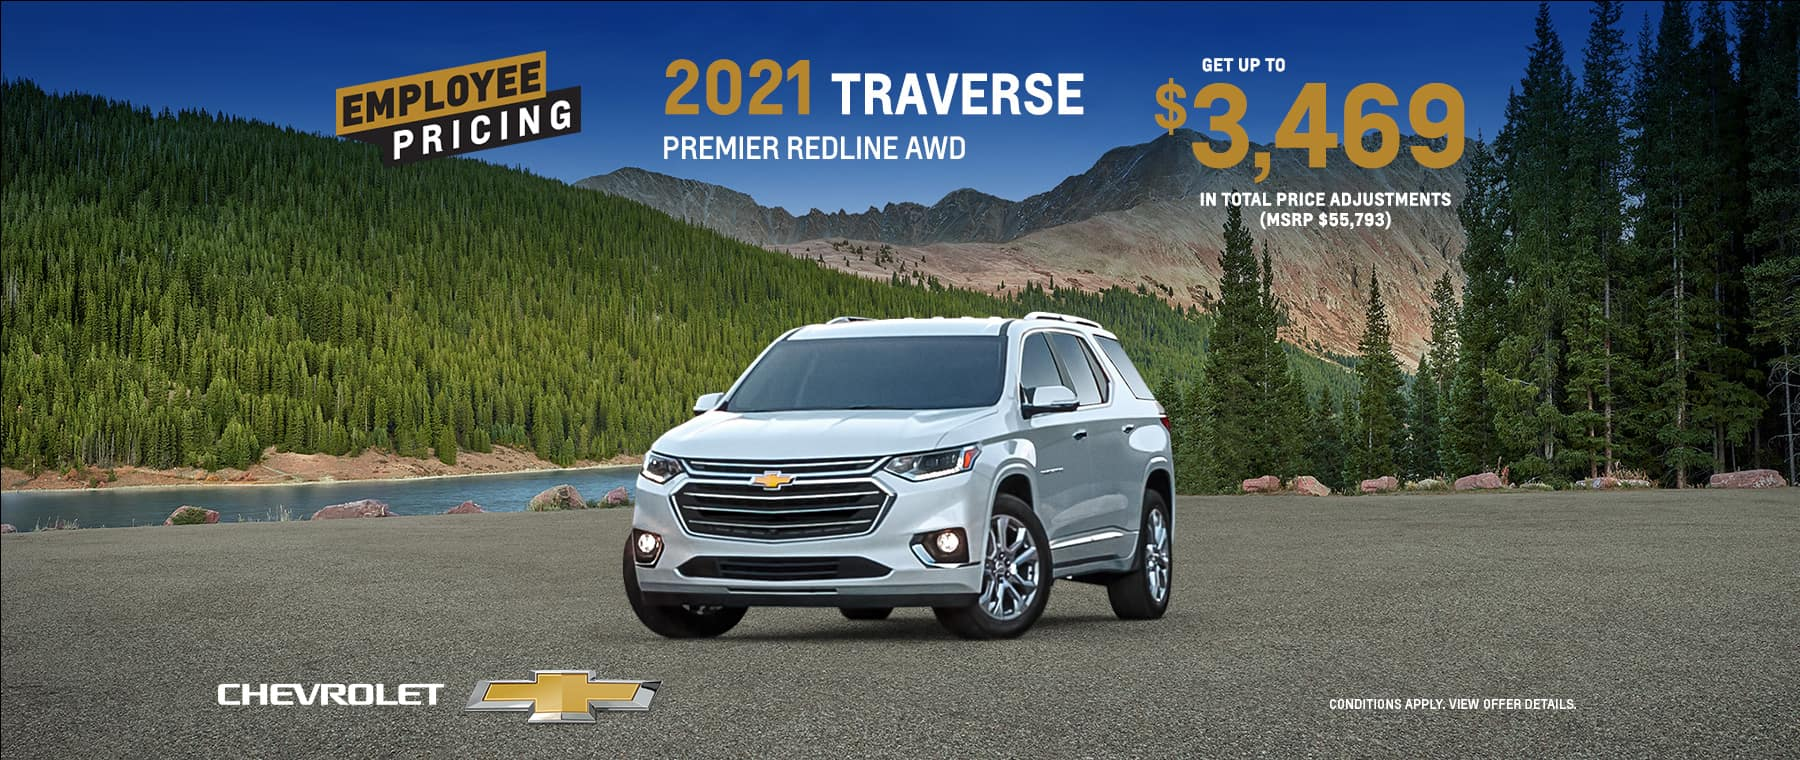 2021_MAY_WST_Chevy_T3_EN_1800x760_CAR-SUV_TRAVERSE